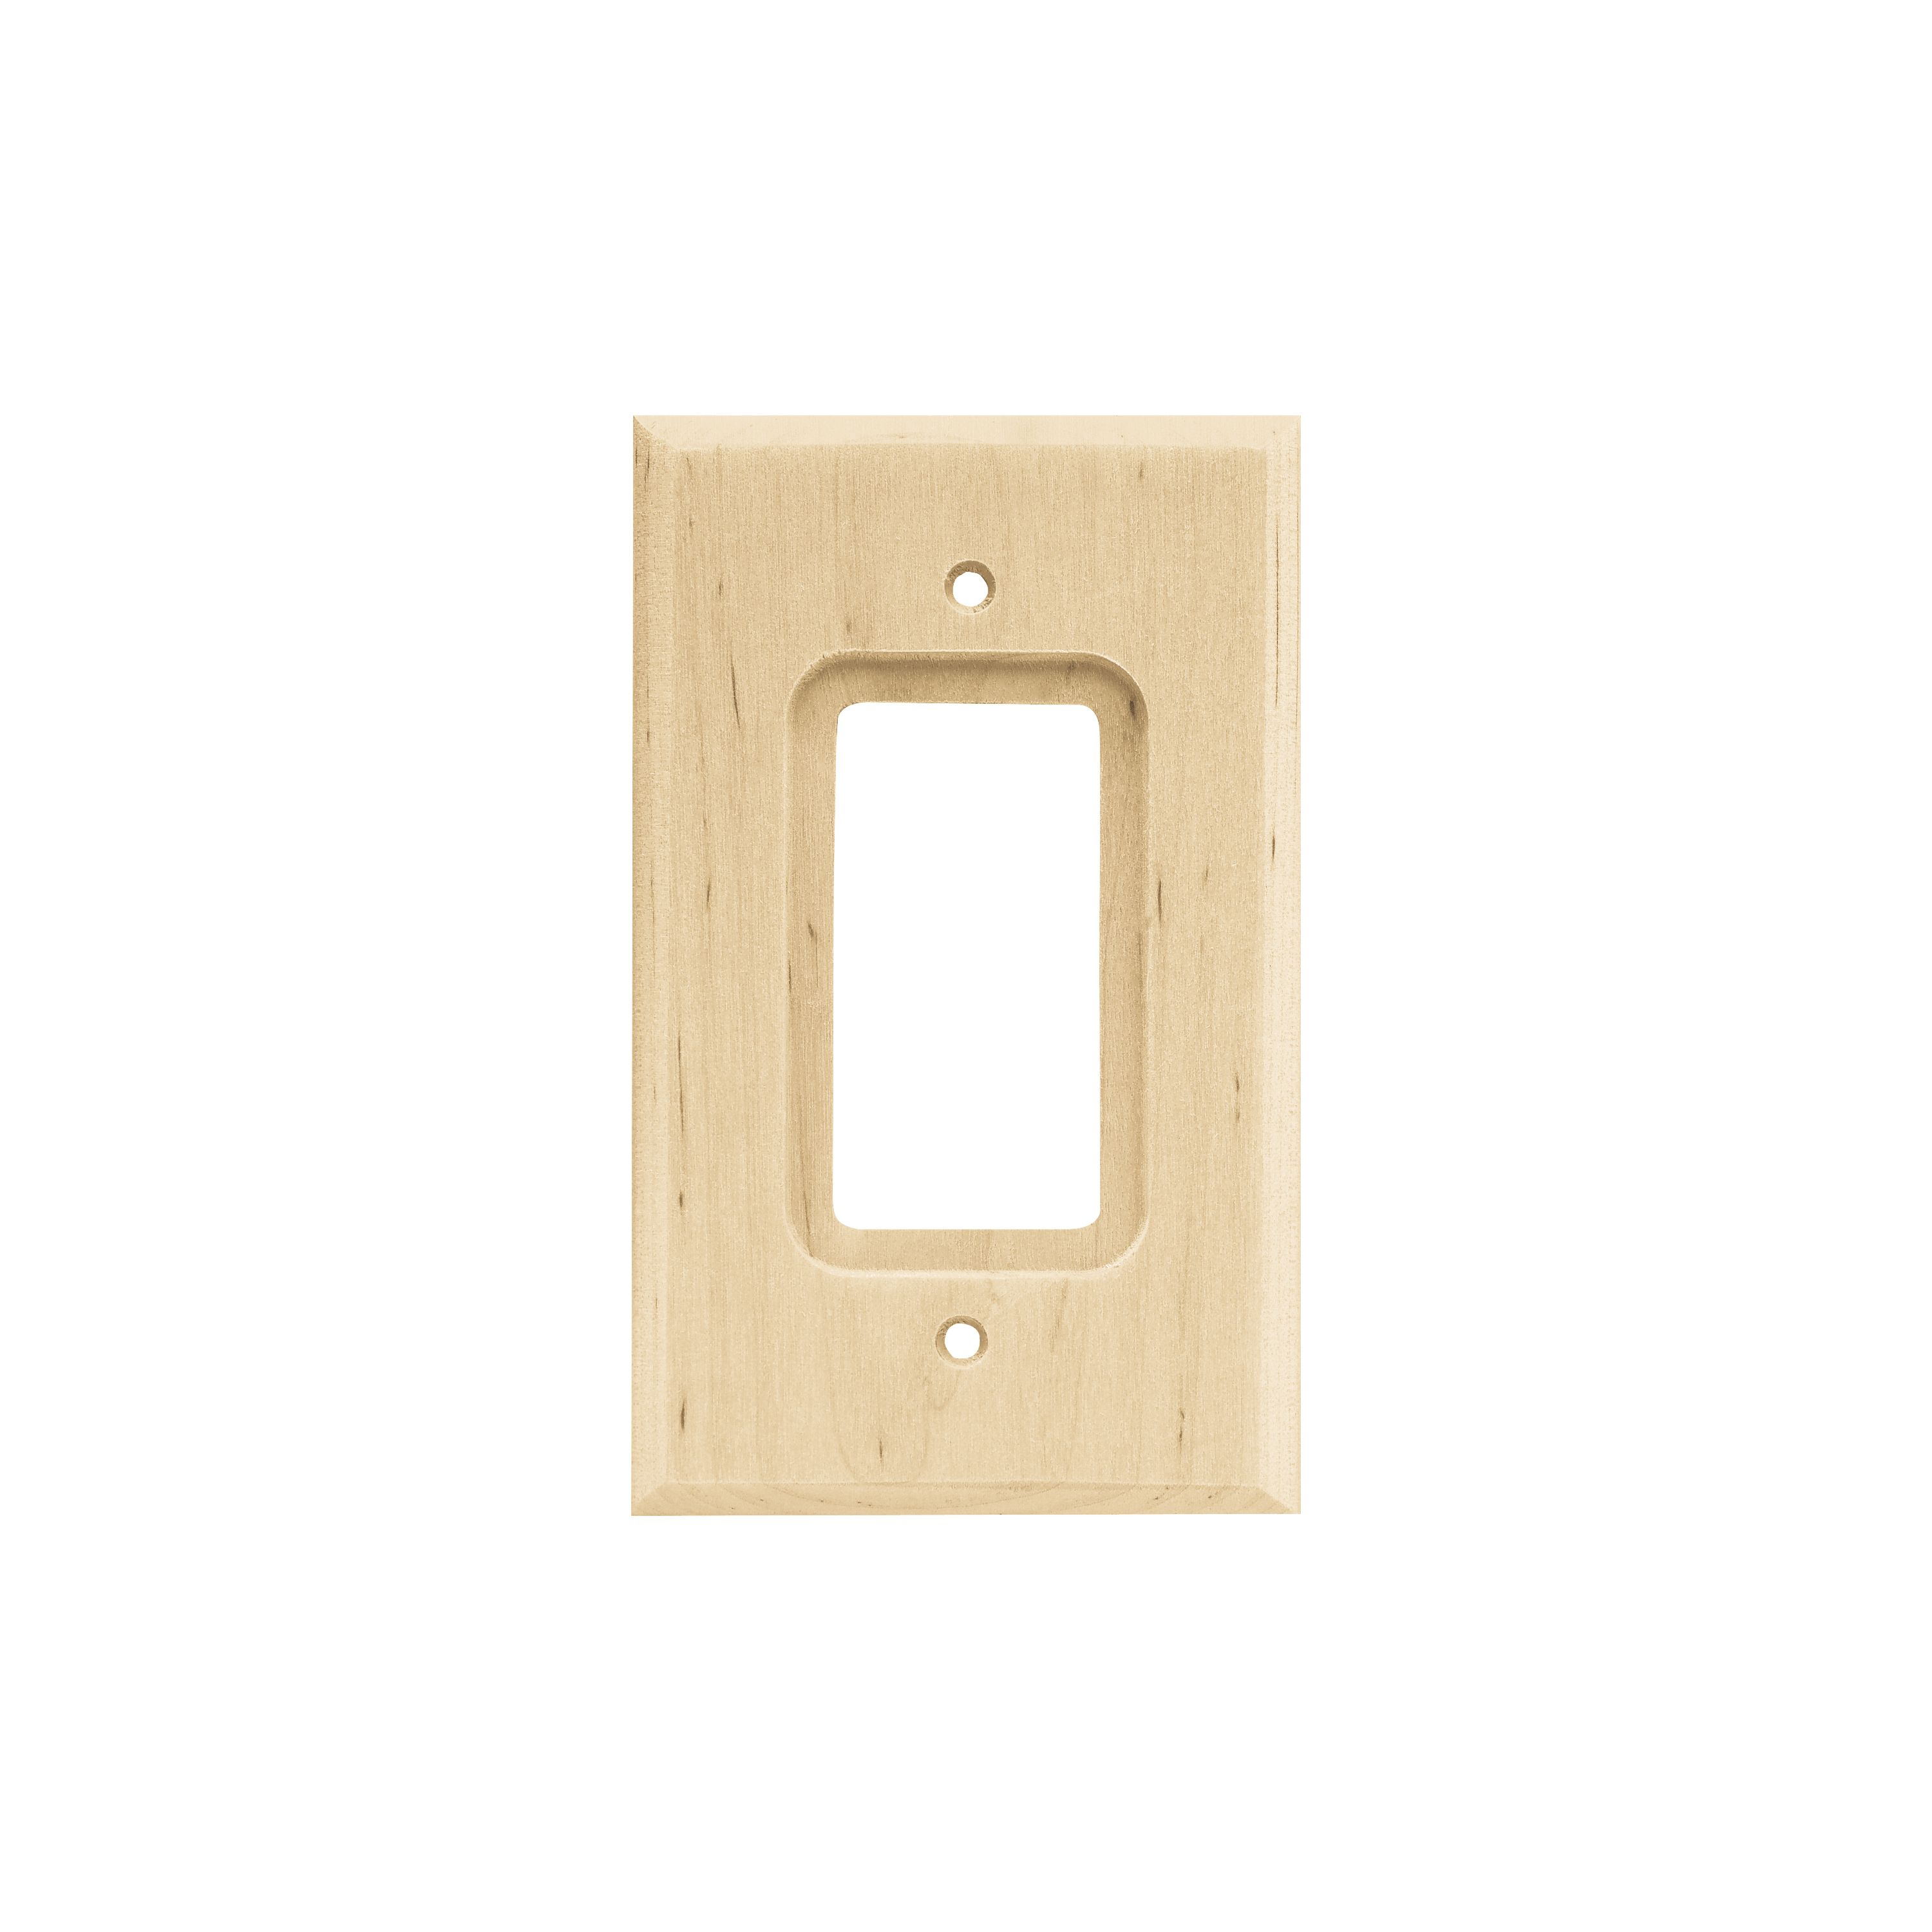 Franklin Brass Wood Square Single Decorator Wall Plate - Walmart.com